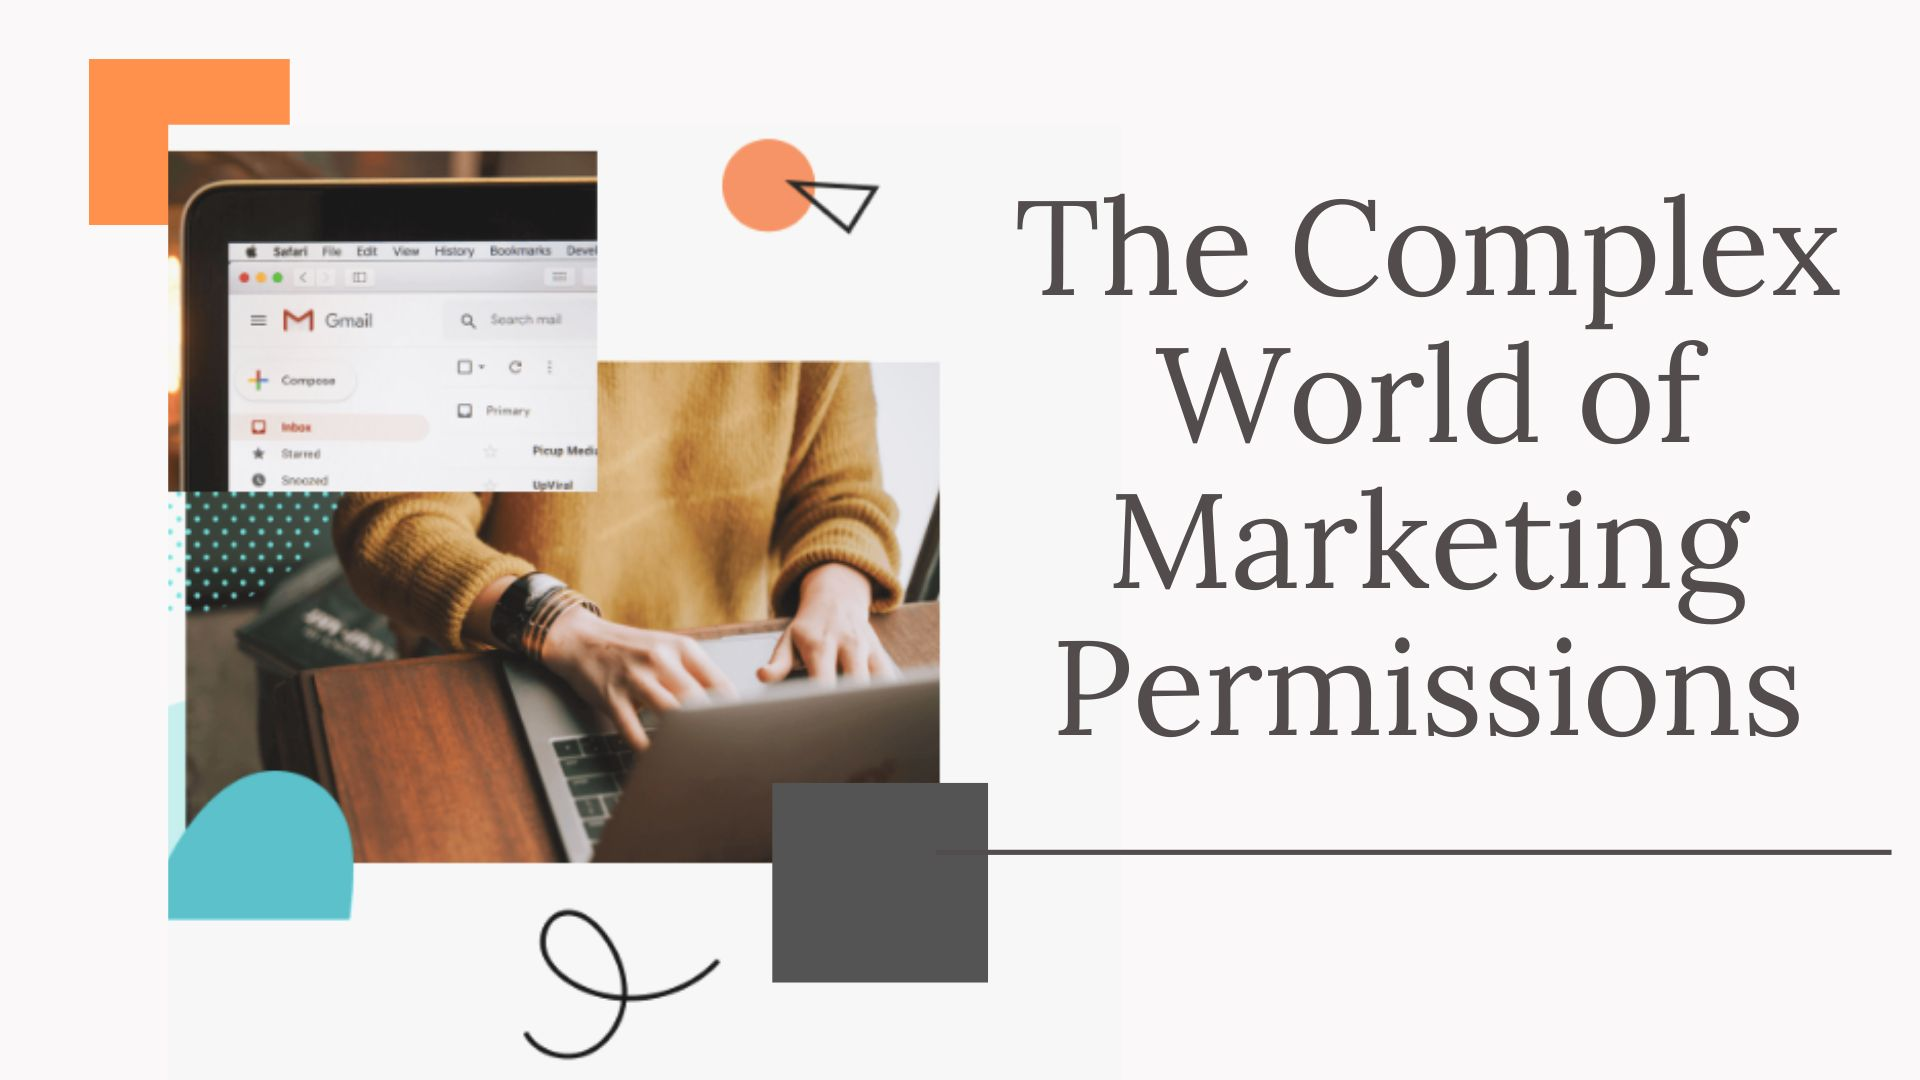 The elephant in the room - Marketing Permissions